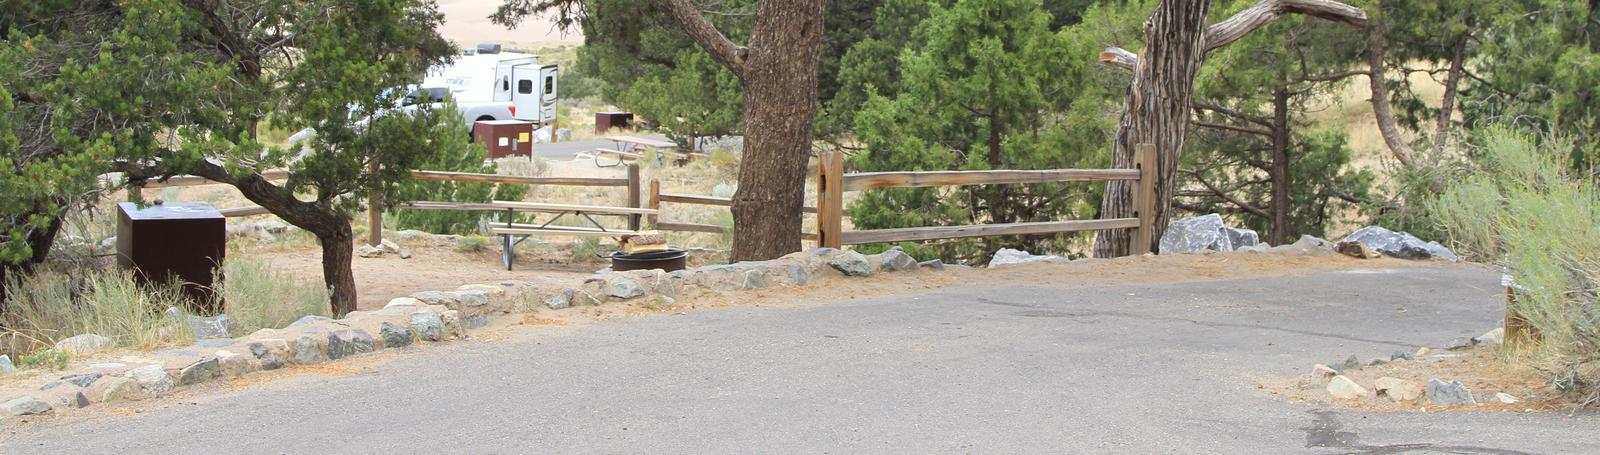 Site #4, Pinon Flats Campground